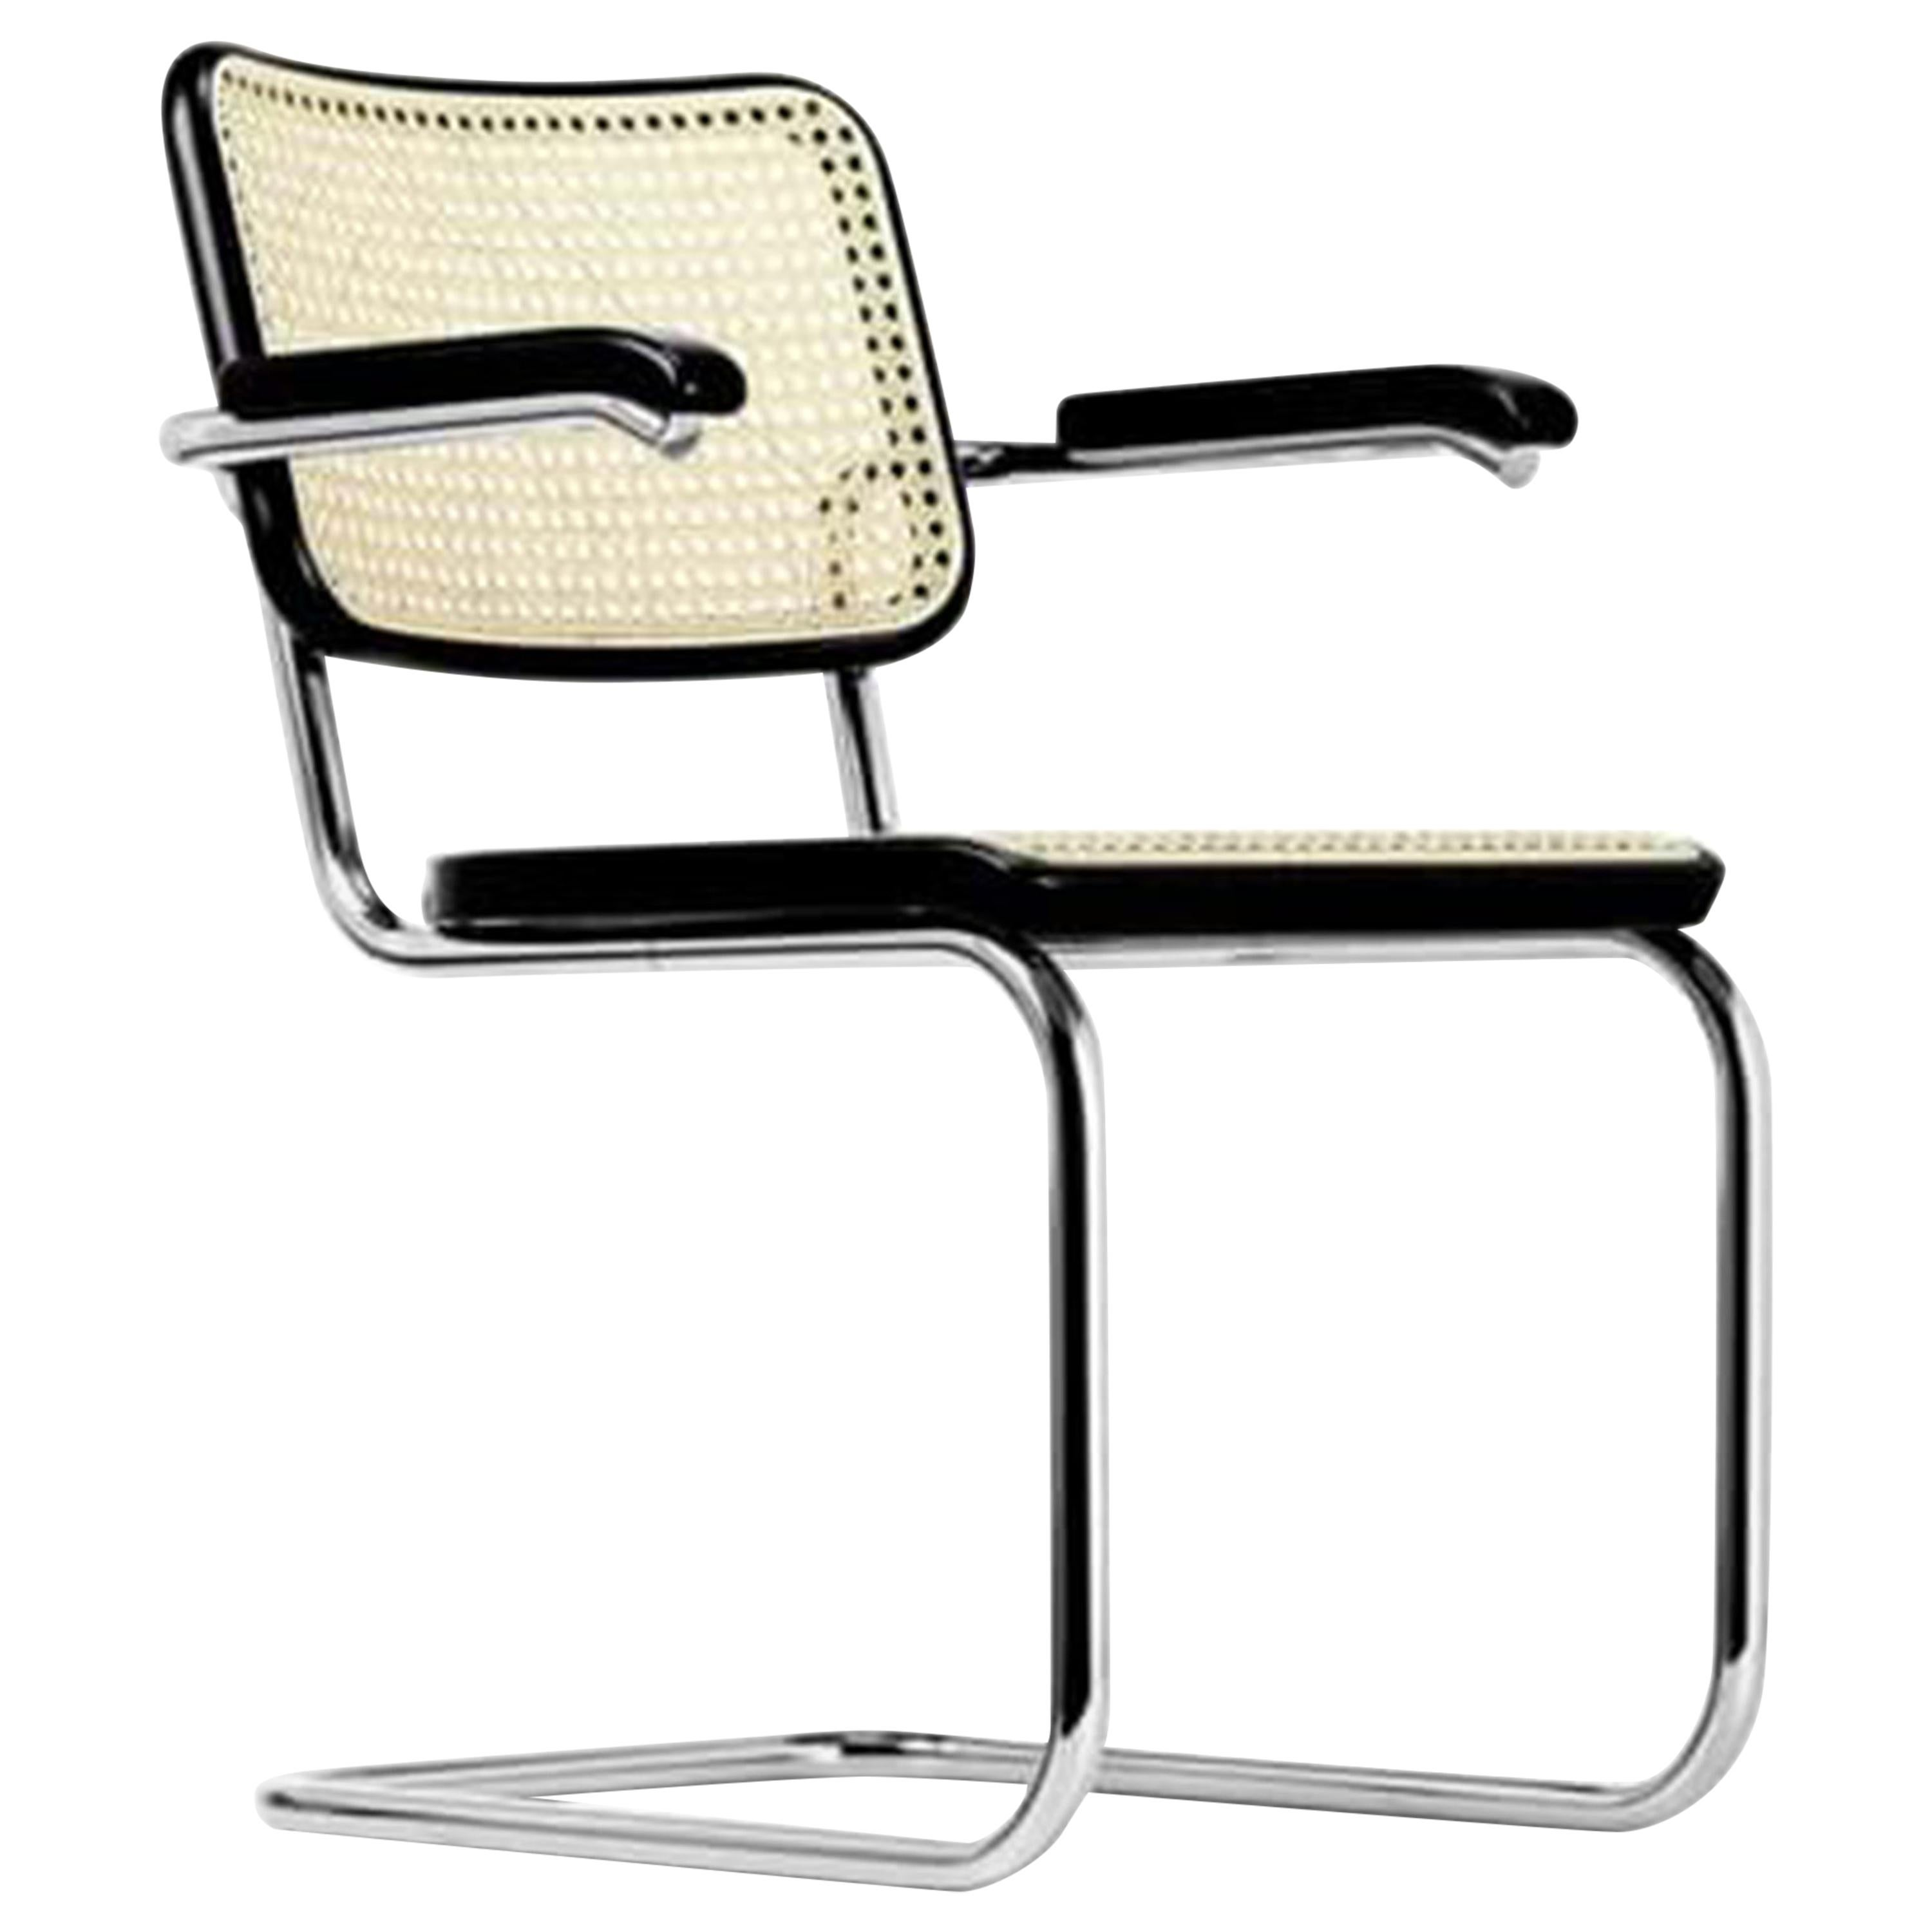 S 64 Cantilever Armchair Designed by Marcel Breuer